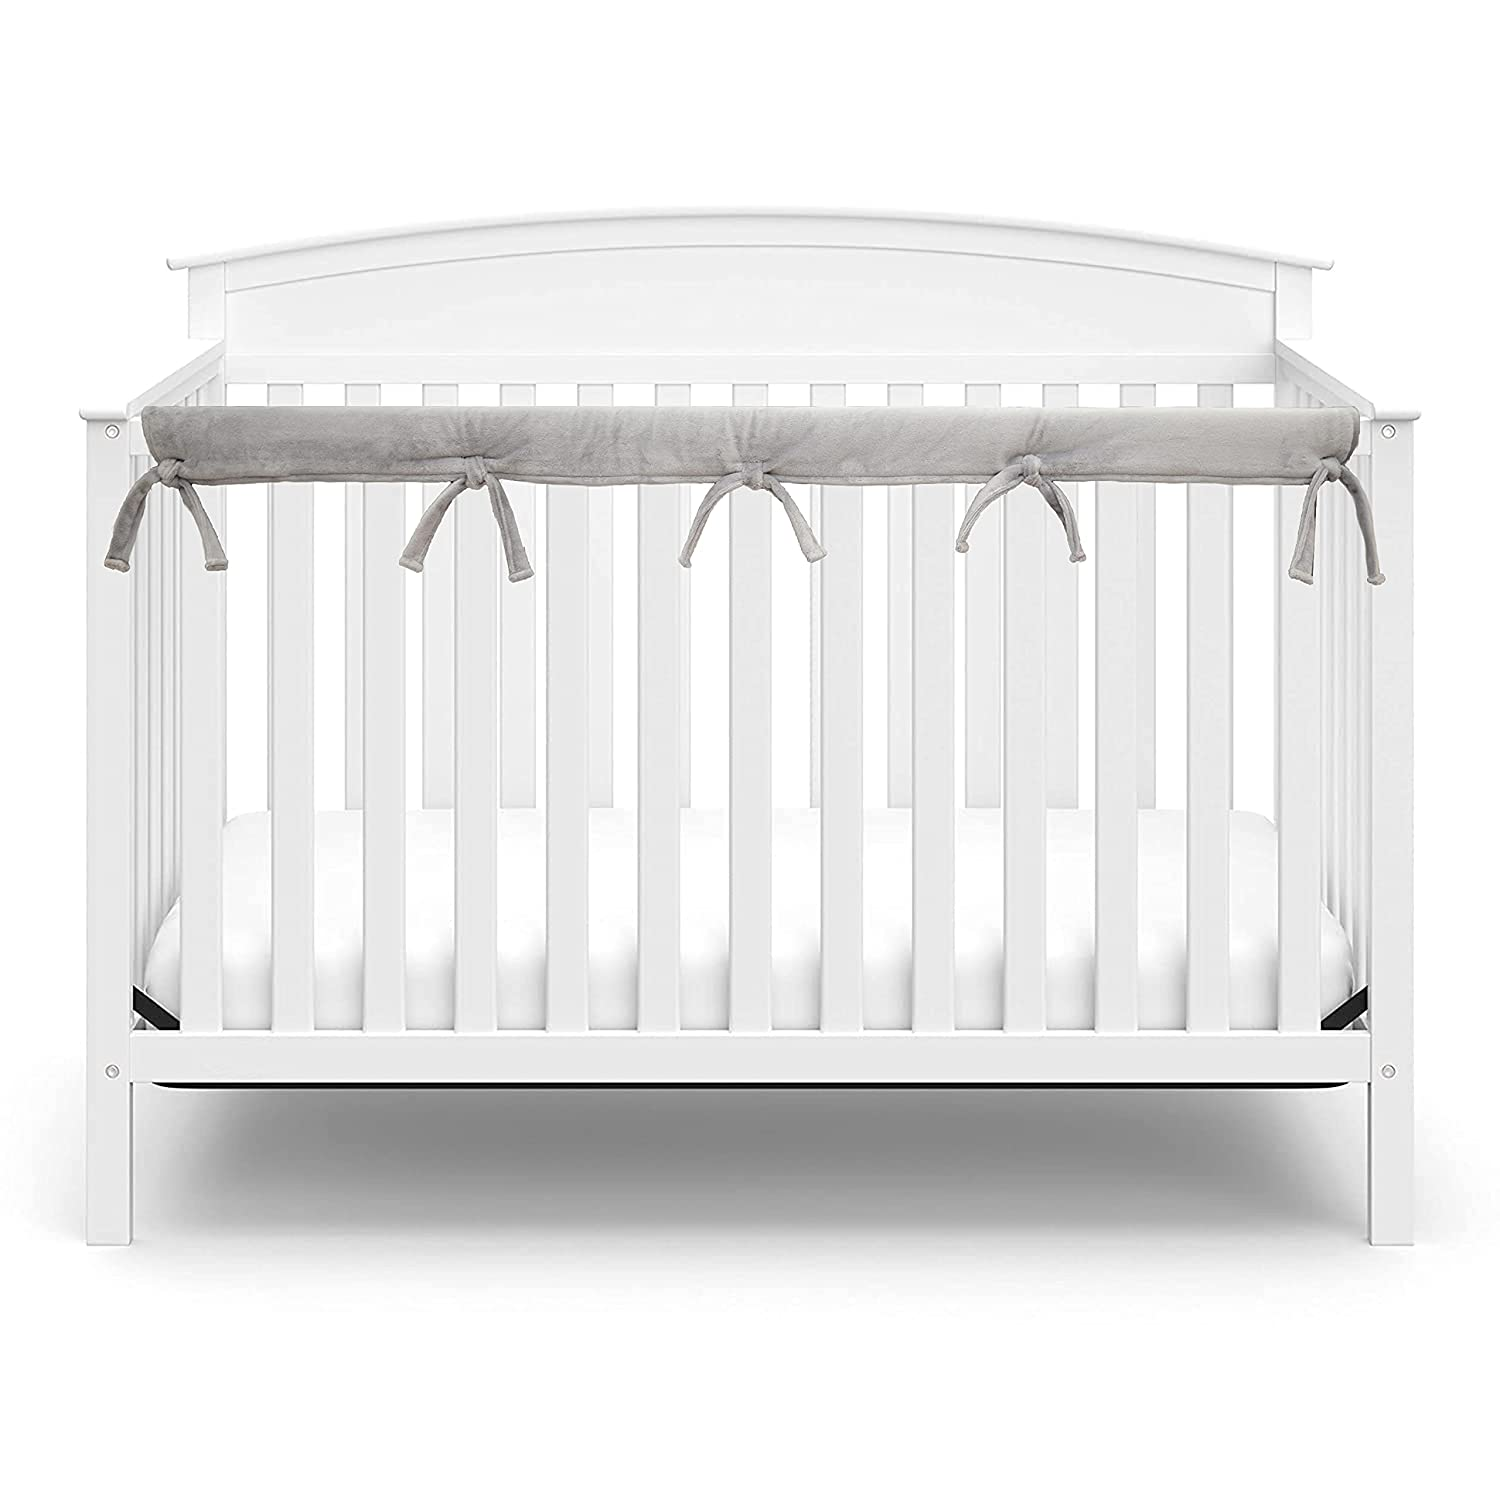 American Baby Company Supreme 1 Pack Heavenly Soft Narrow Reversible Crib Rail Cover for Long Rail, Gray and White, for Rails Measuring up to 4